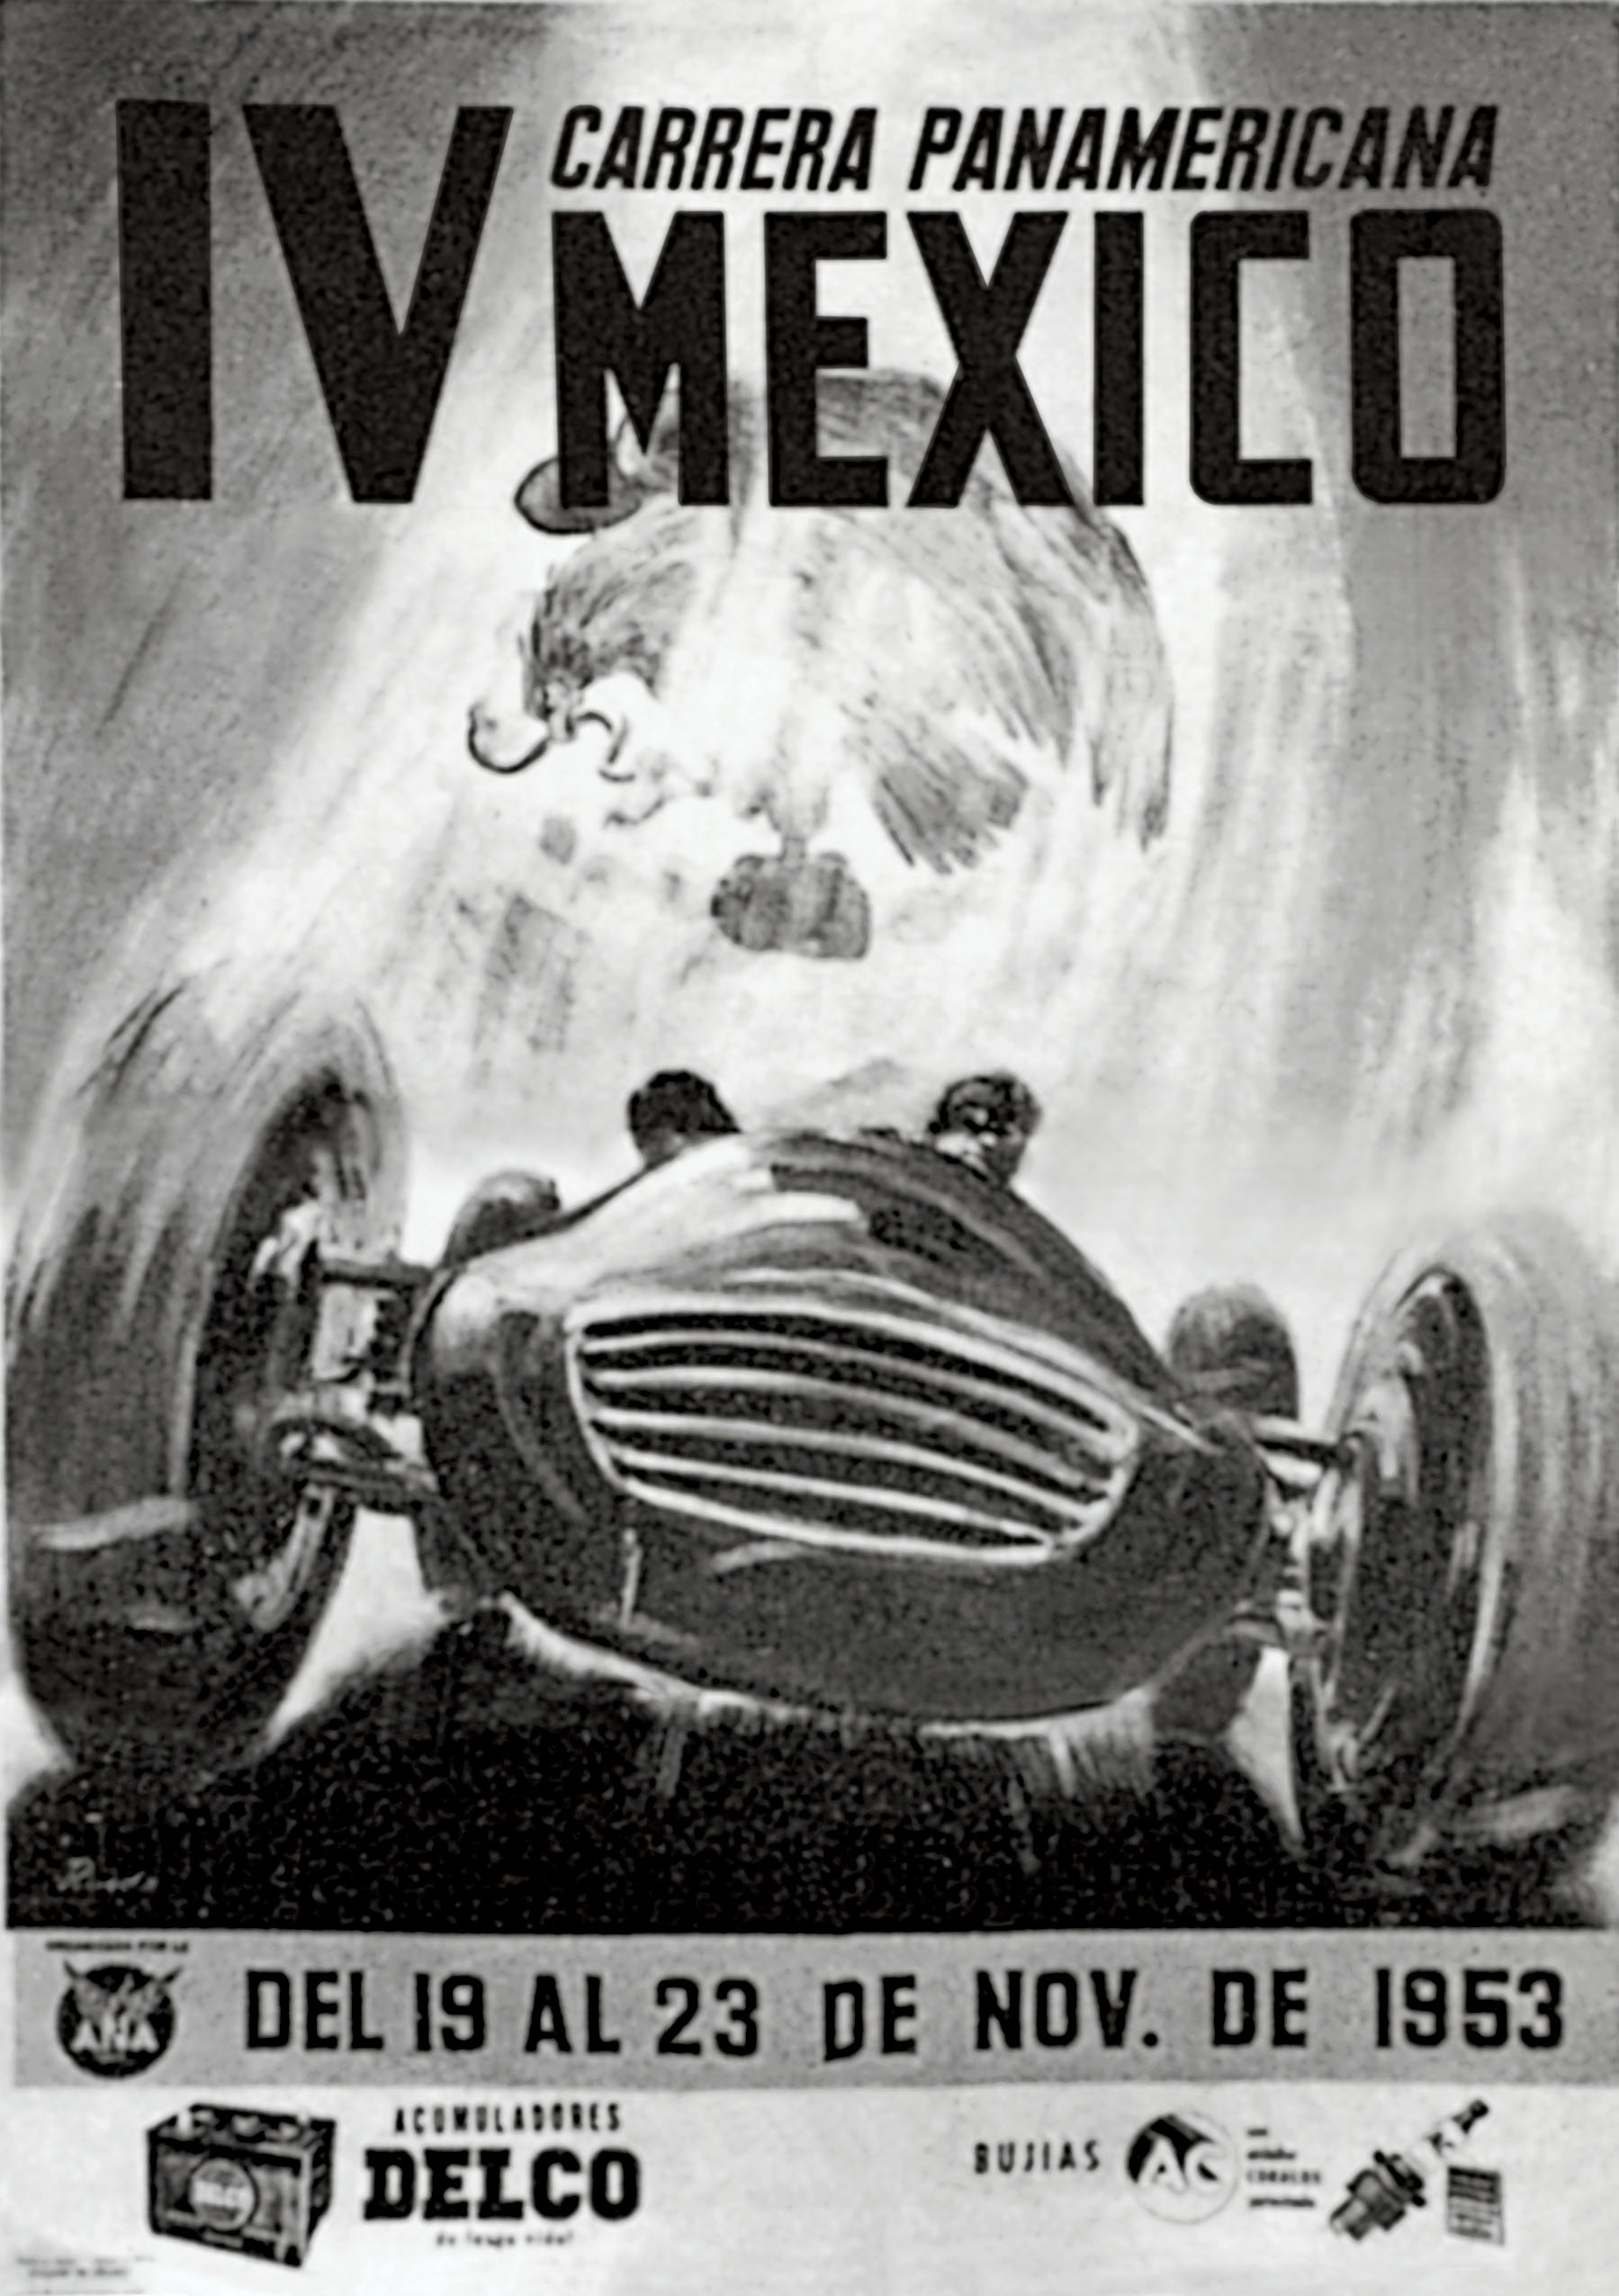 A poster for the 1953 Carrera Panamericana Rally in Mexico, a race which helped inspire the birth of the  TAG Heuer Carrera .